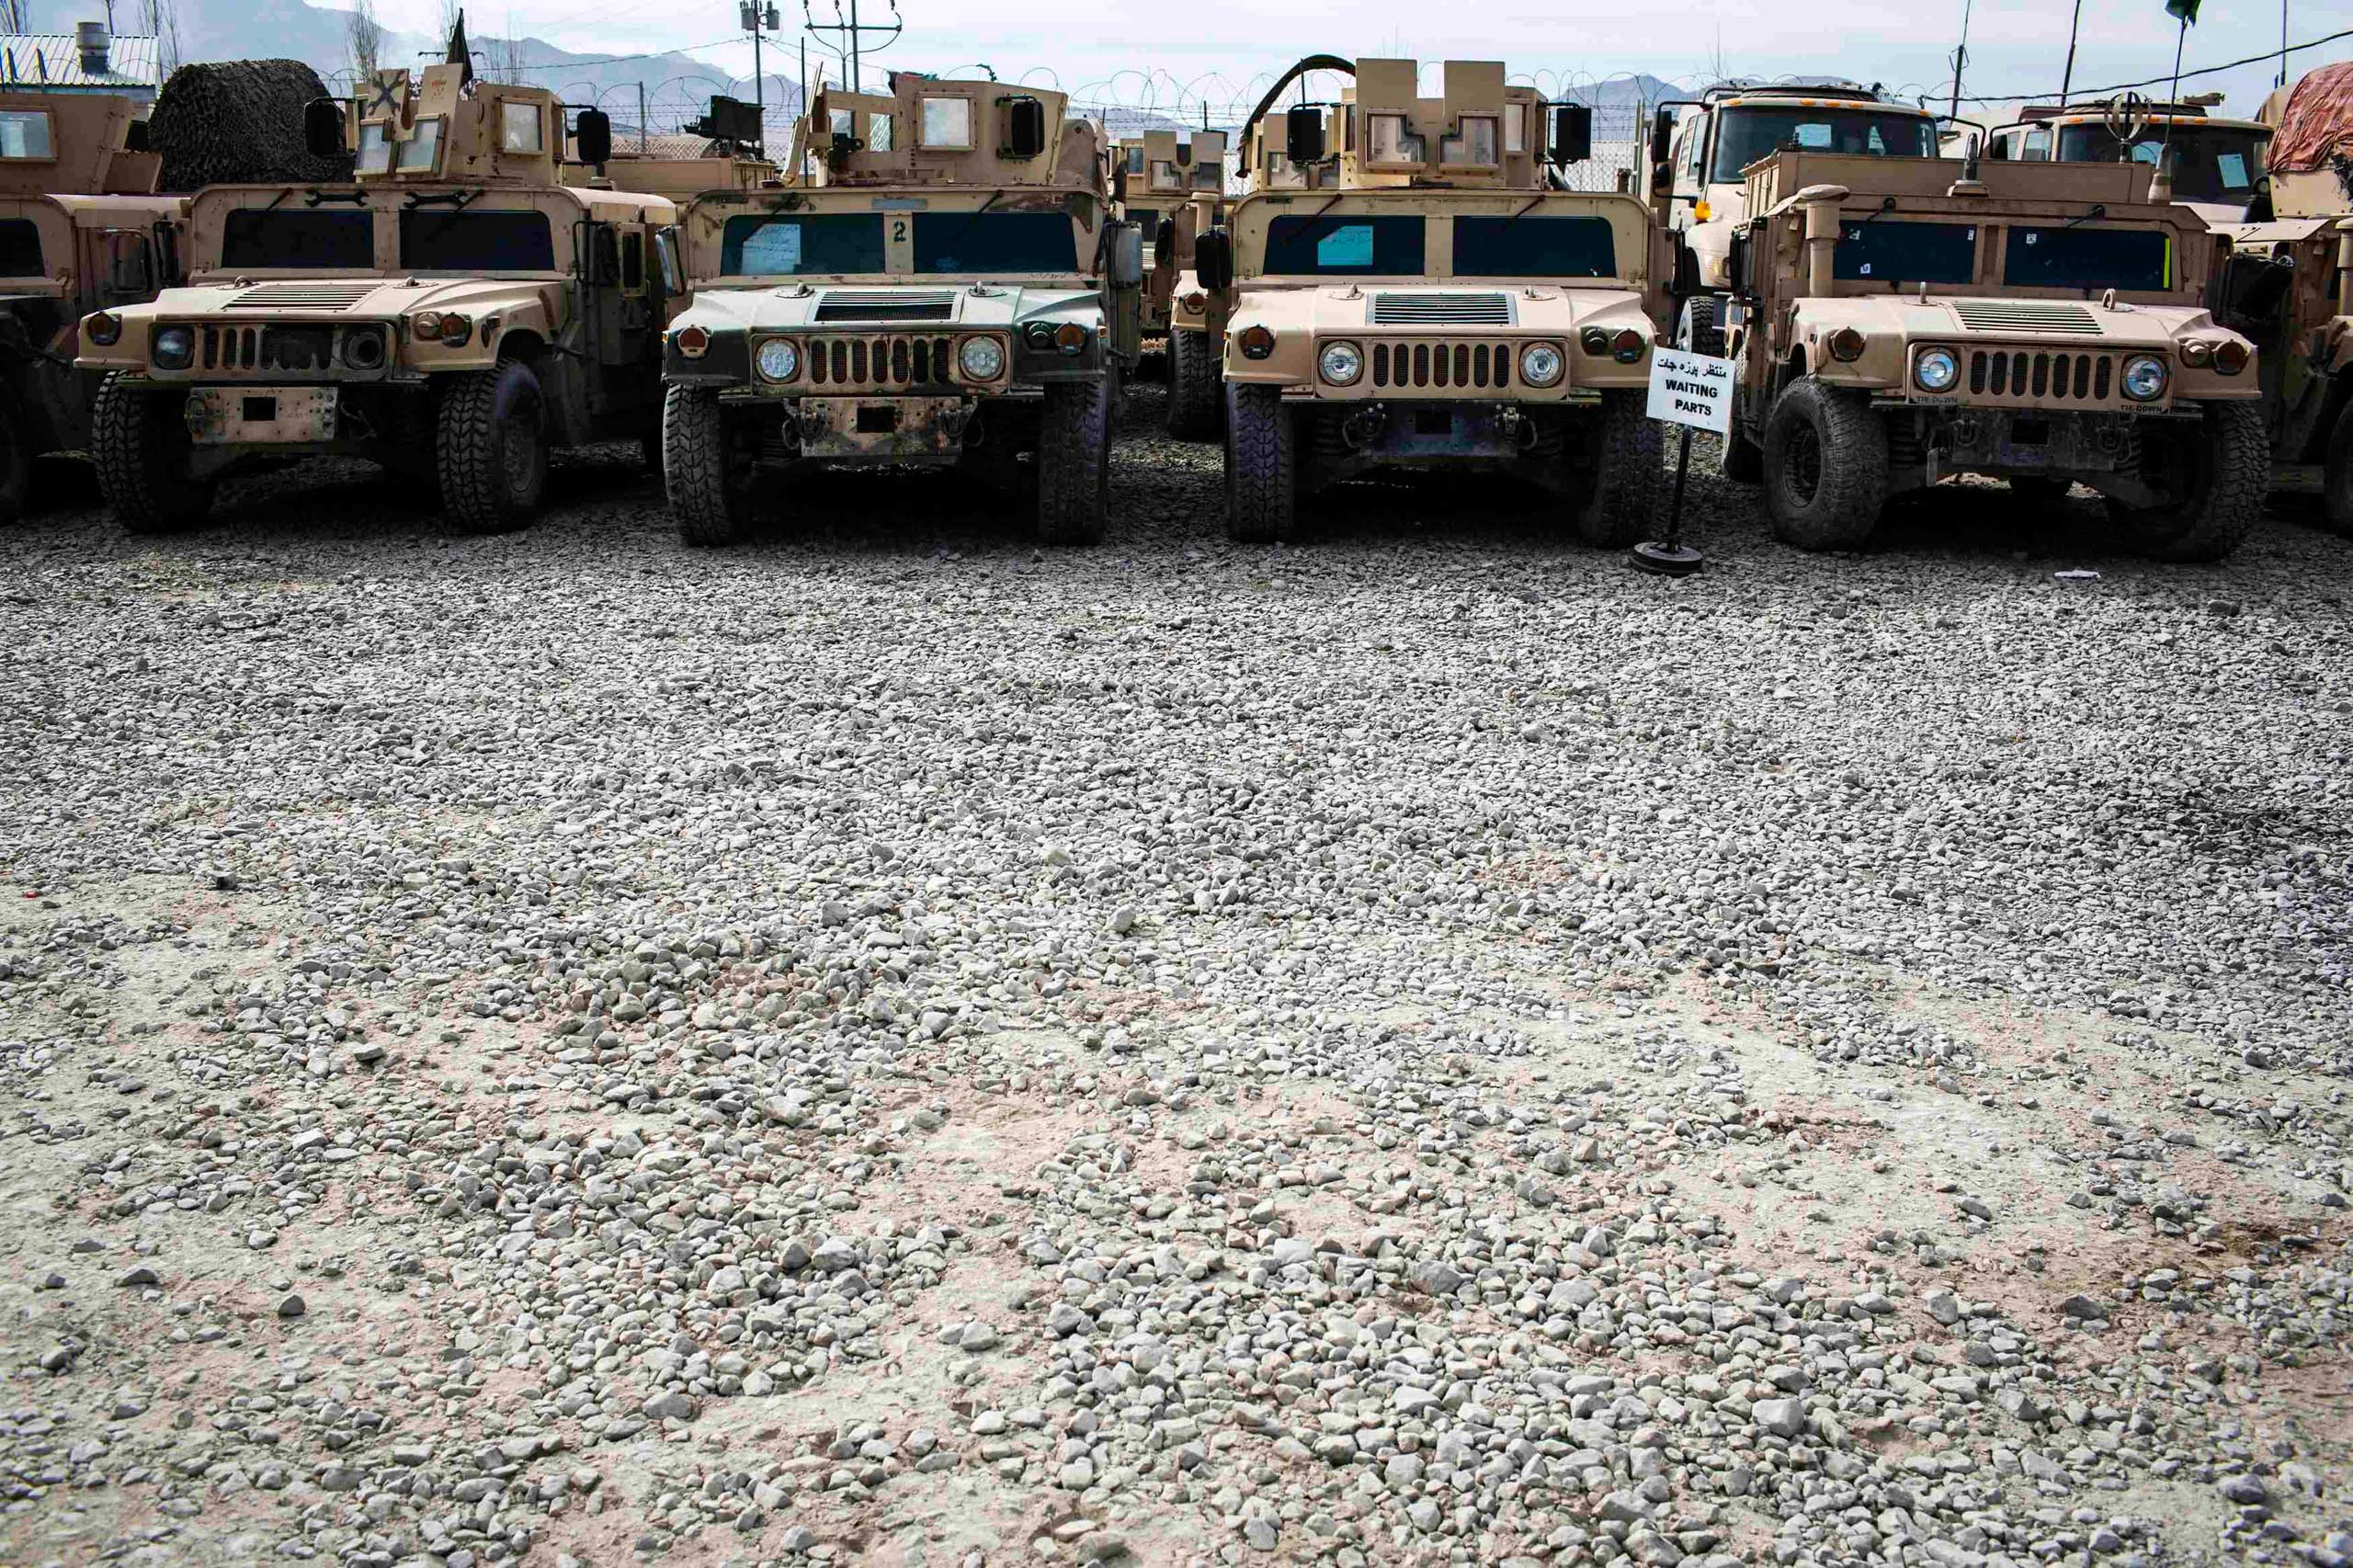 Humvees for the Afghan National Army are lined up waiting for repair parts at the Afghan National Army headquarters for the 203rd Corps in the Paktia province of Afghanistan on Dec. 21, 2014.